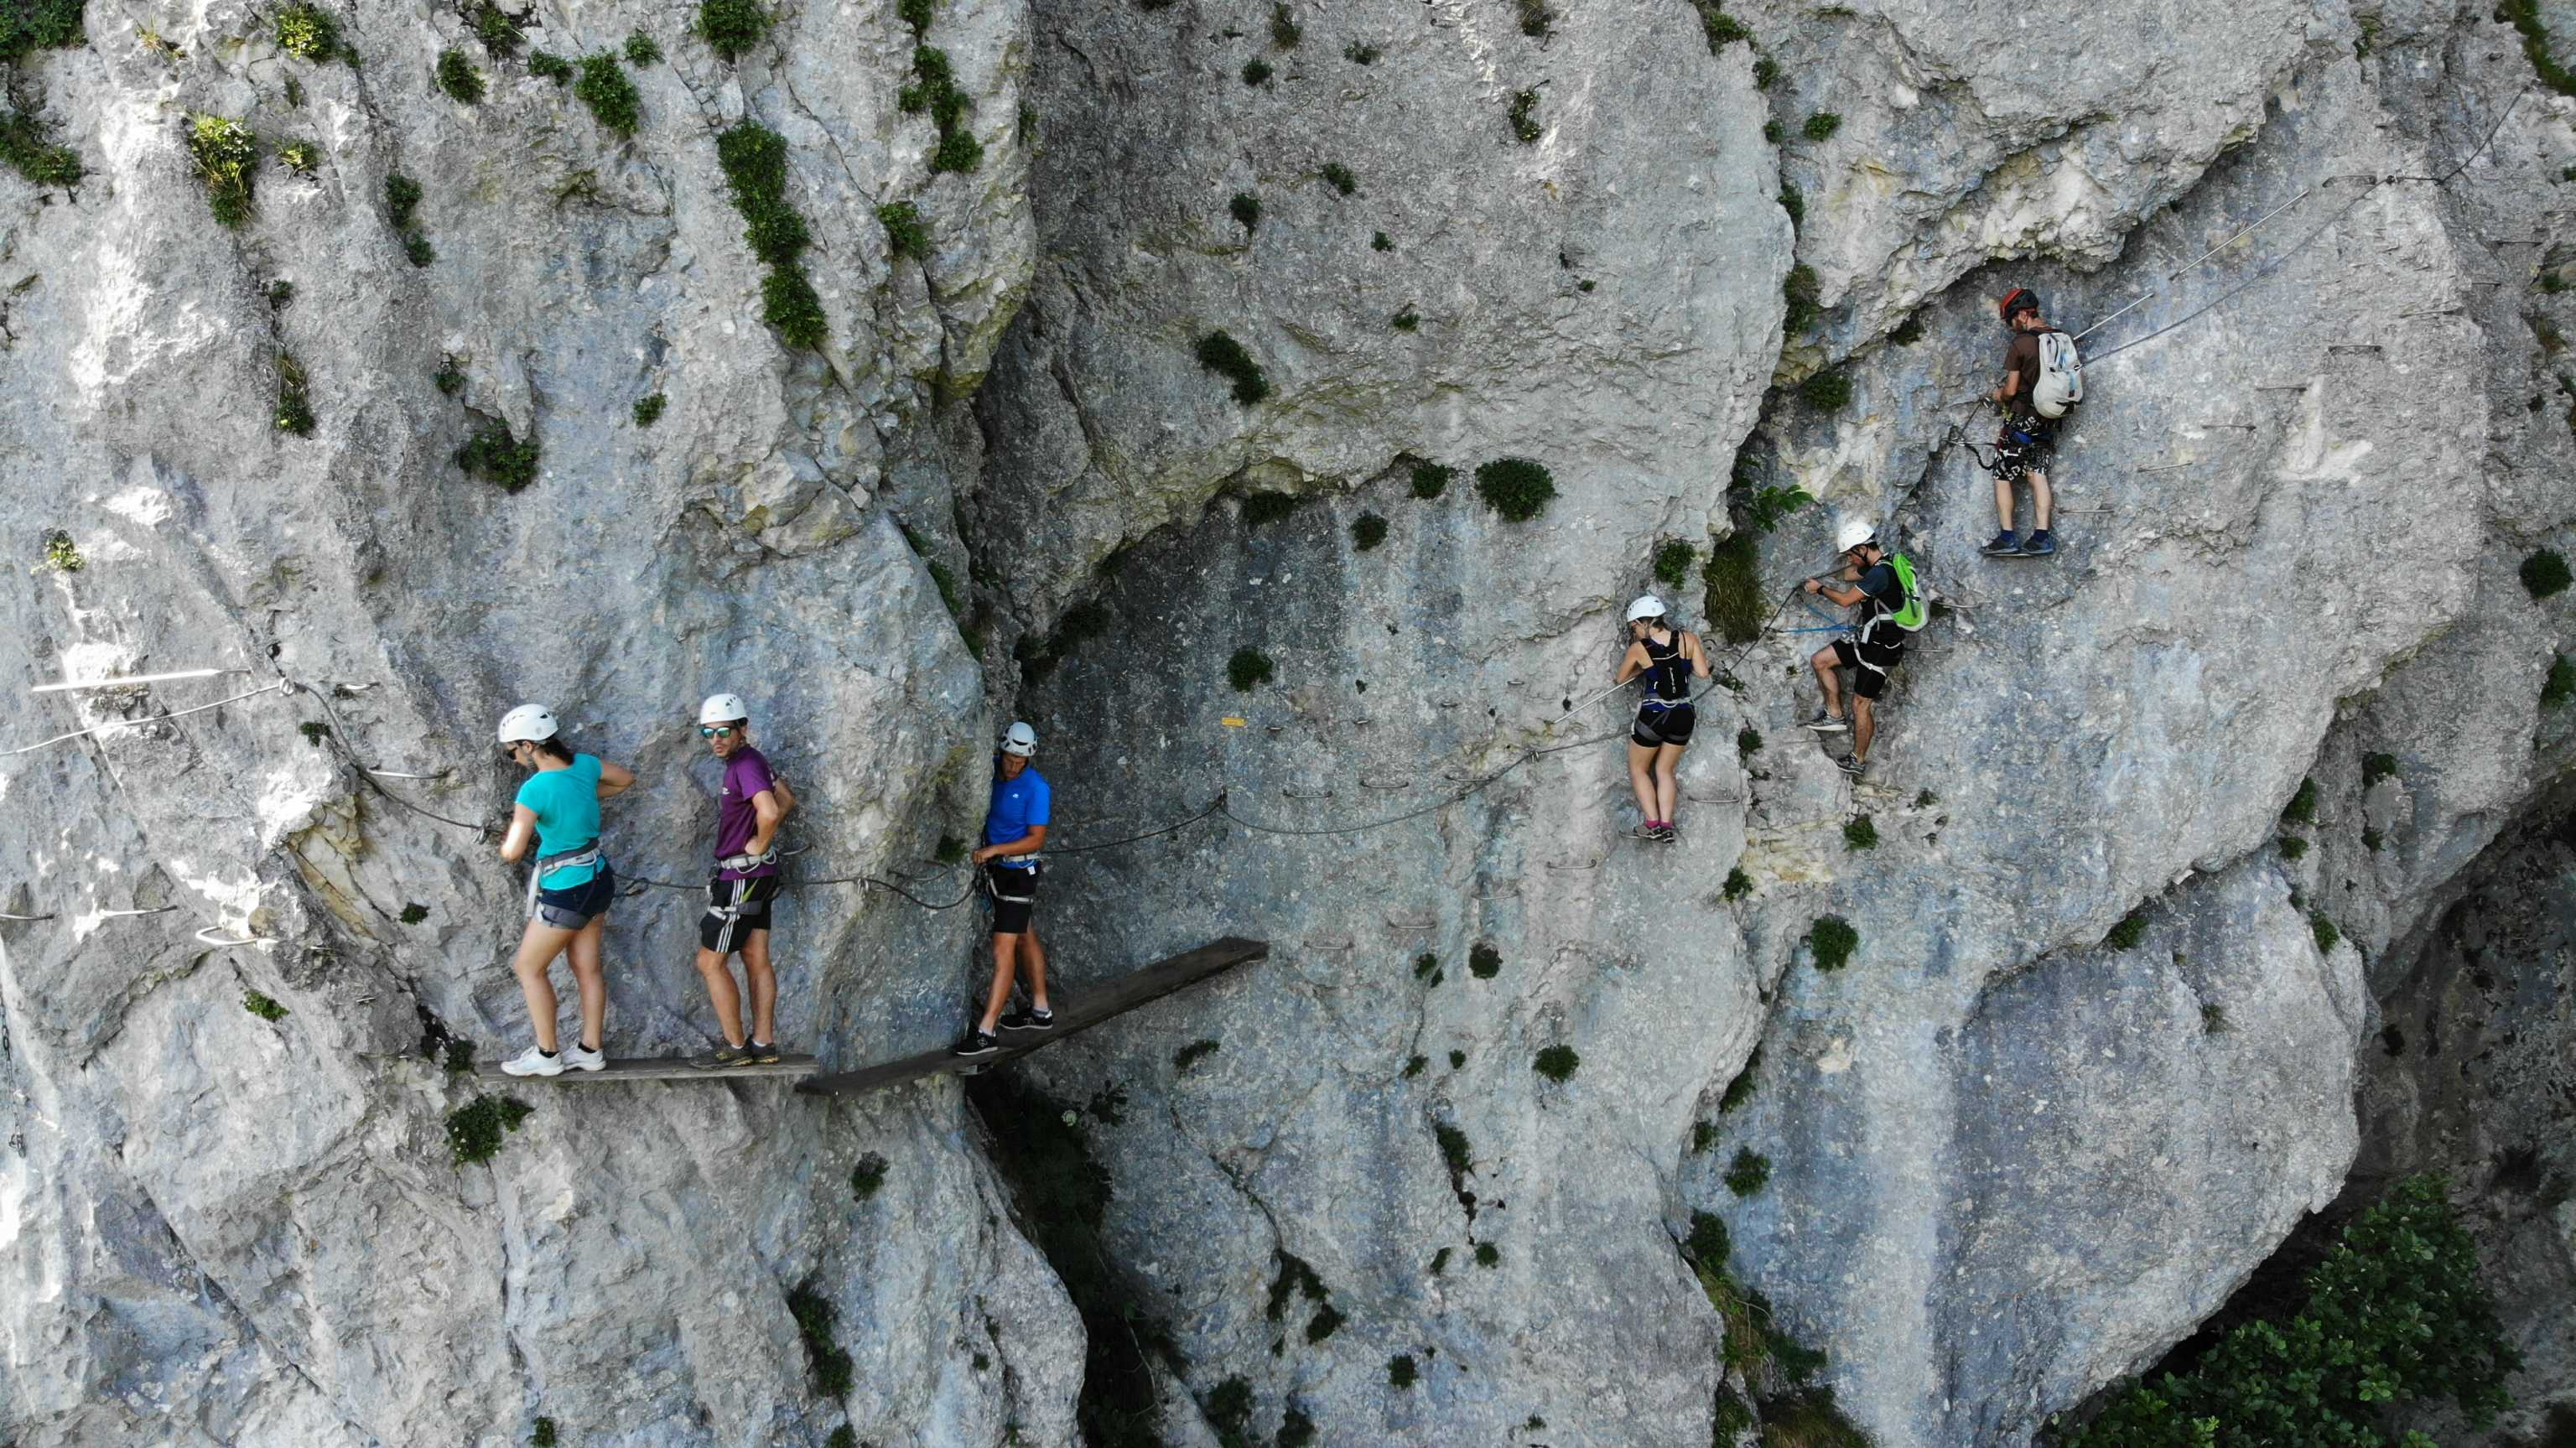 Via ferrata de Roc cornillon